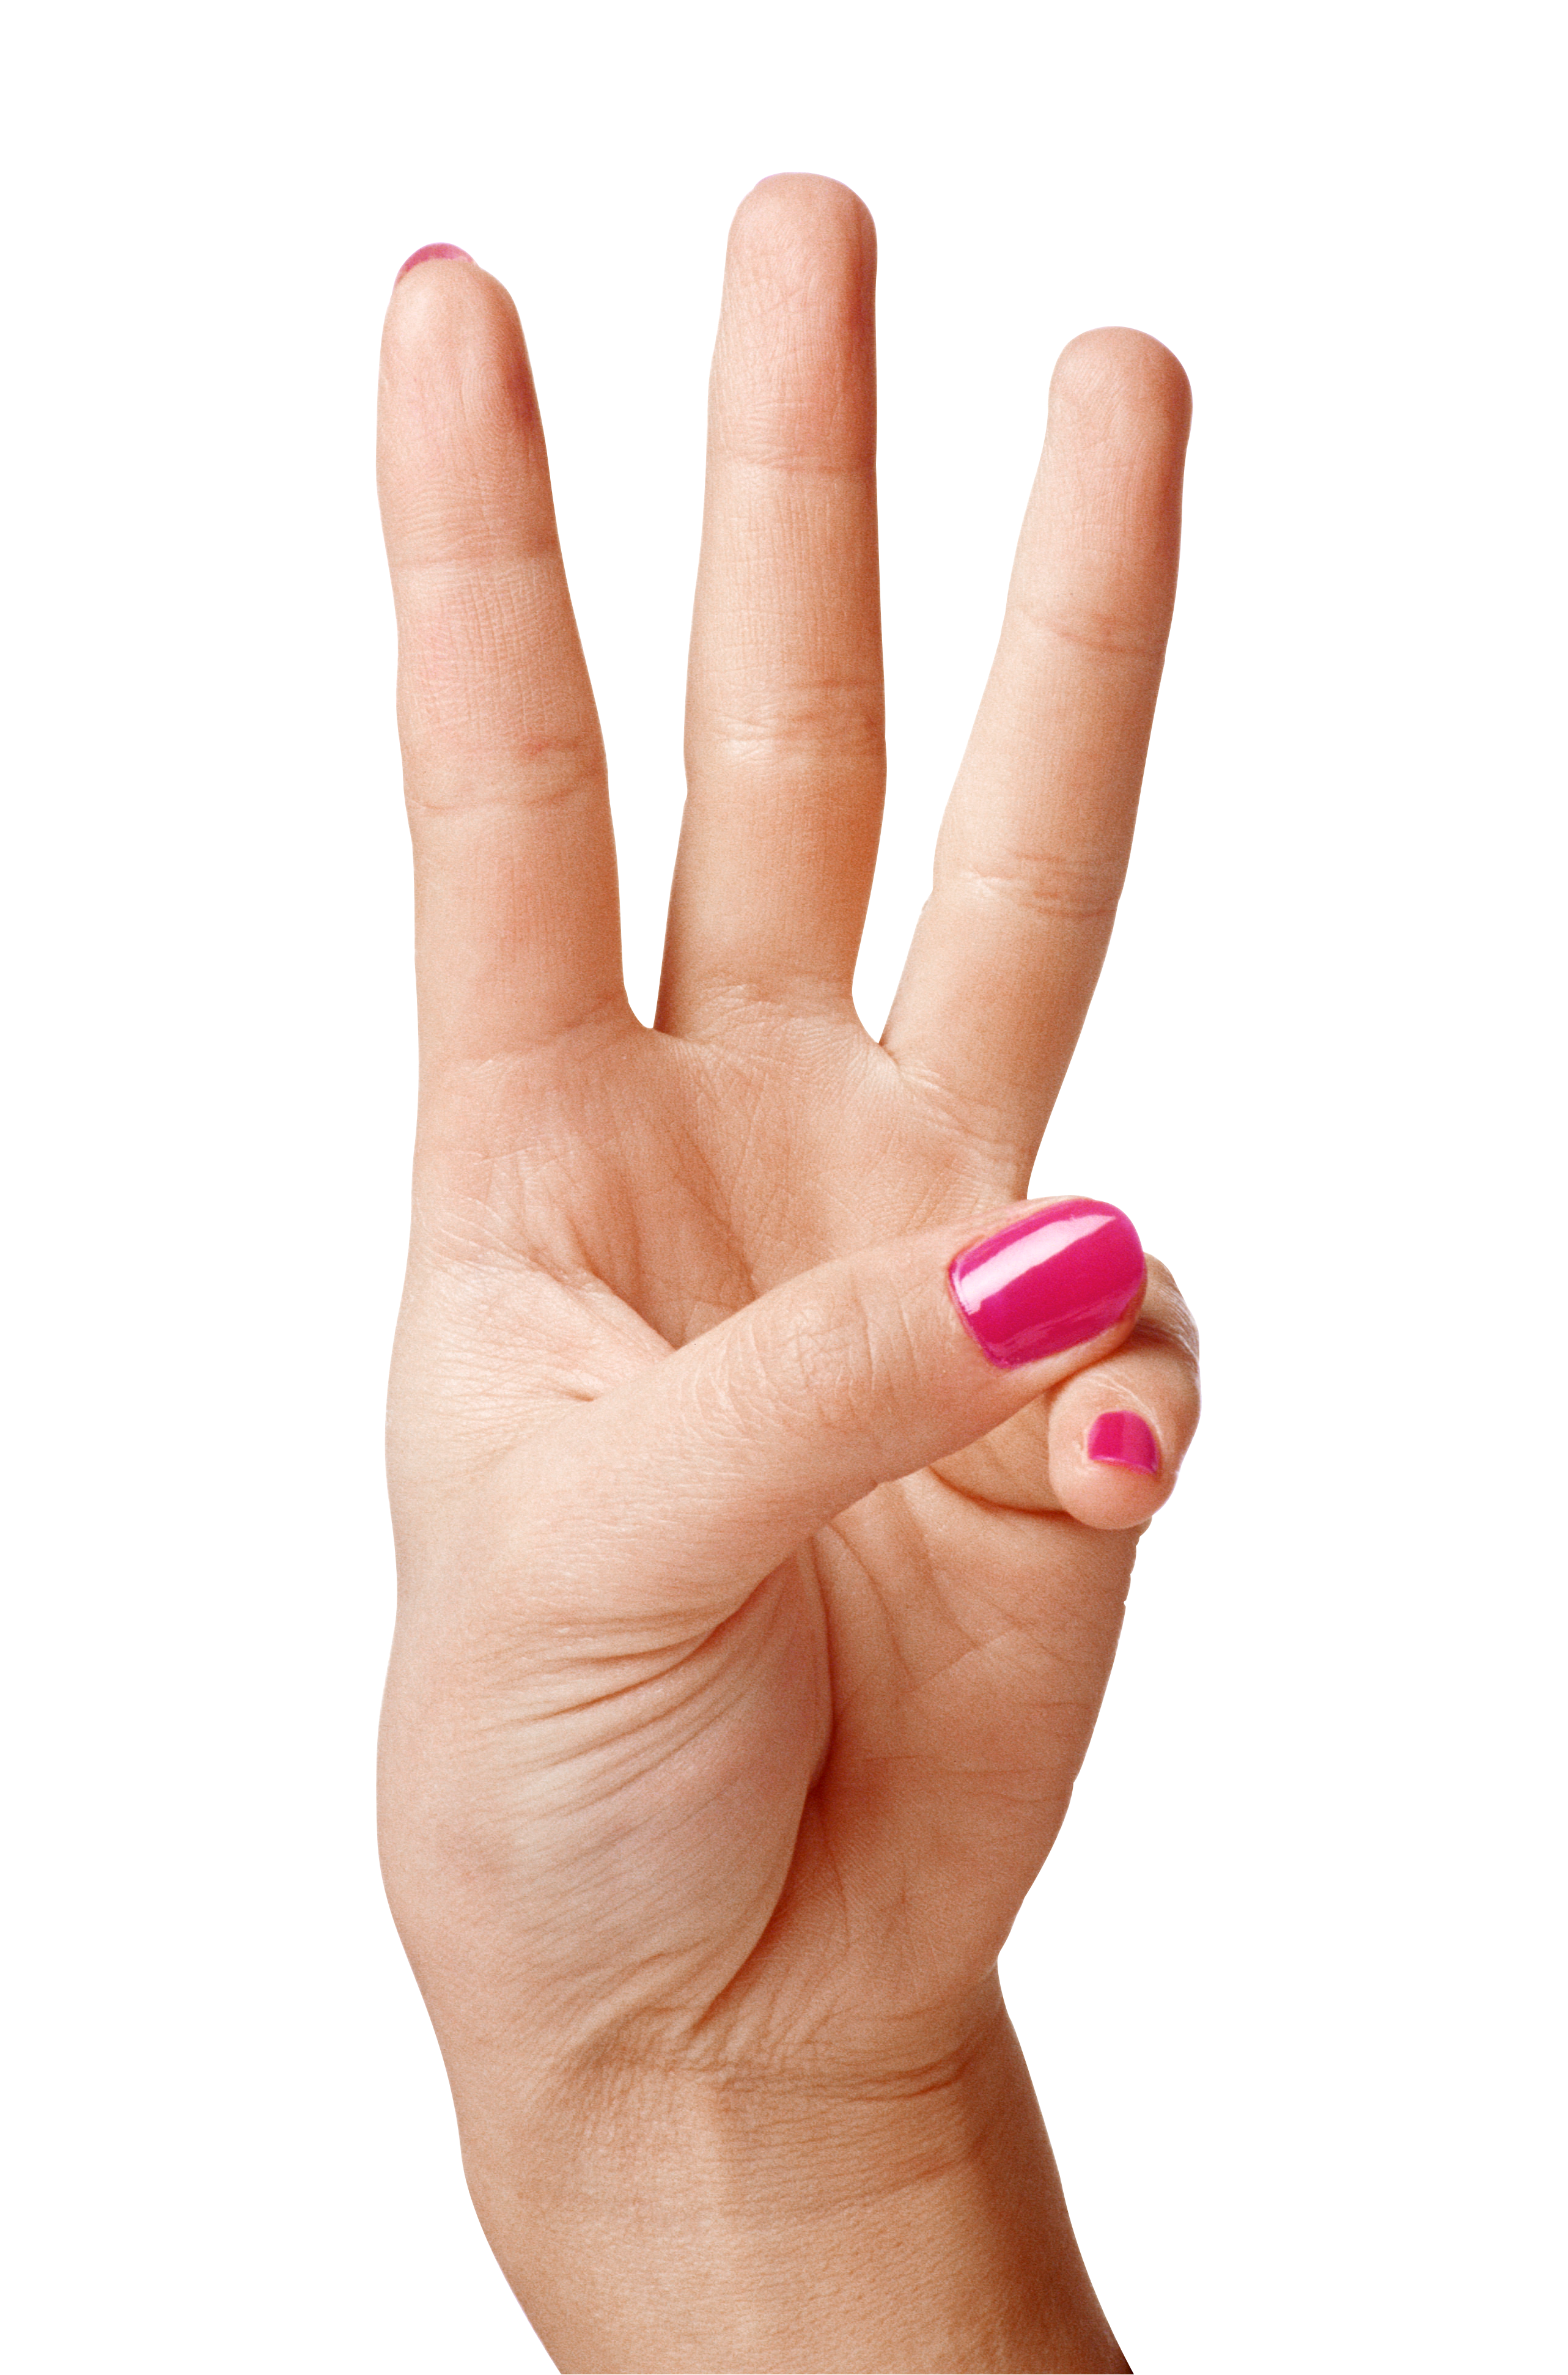 Fingers clipart brown hand. Showing three png image